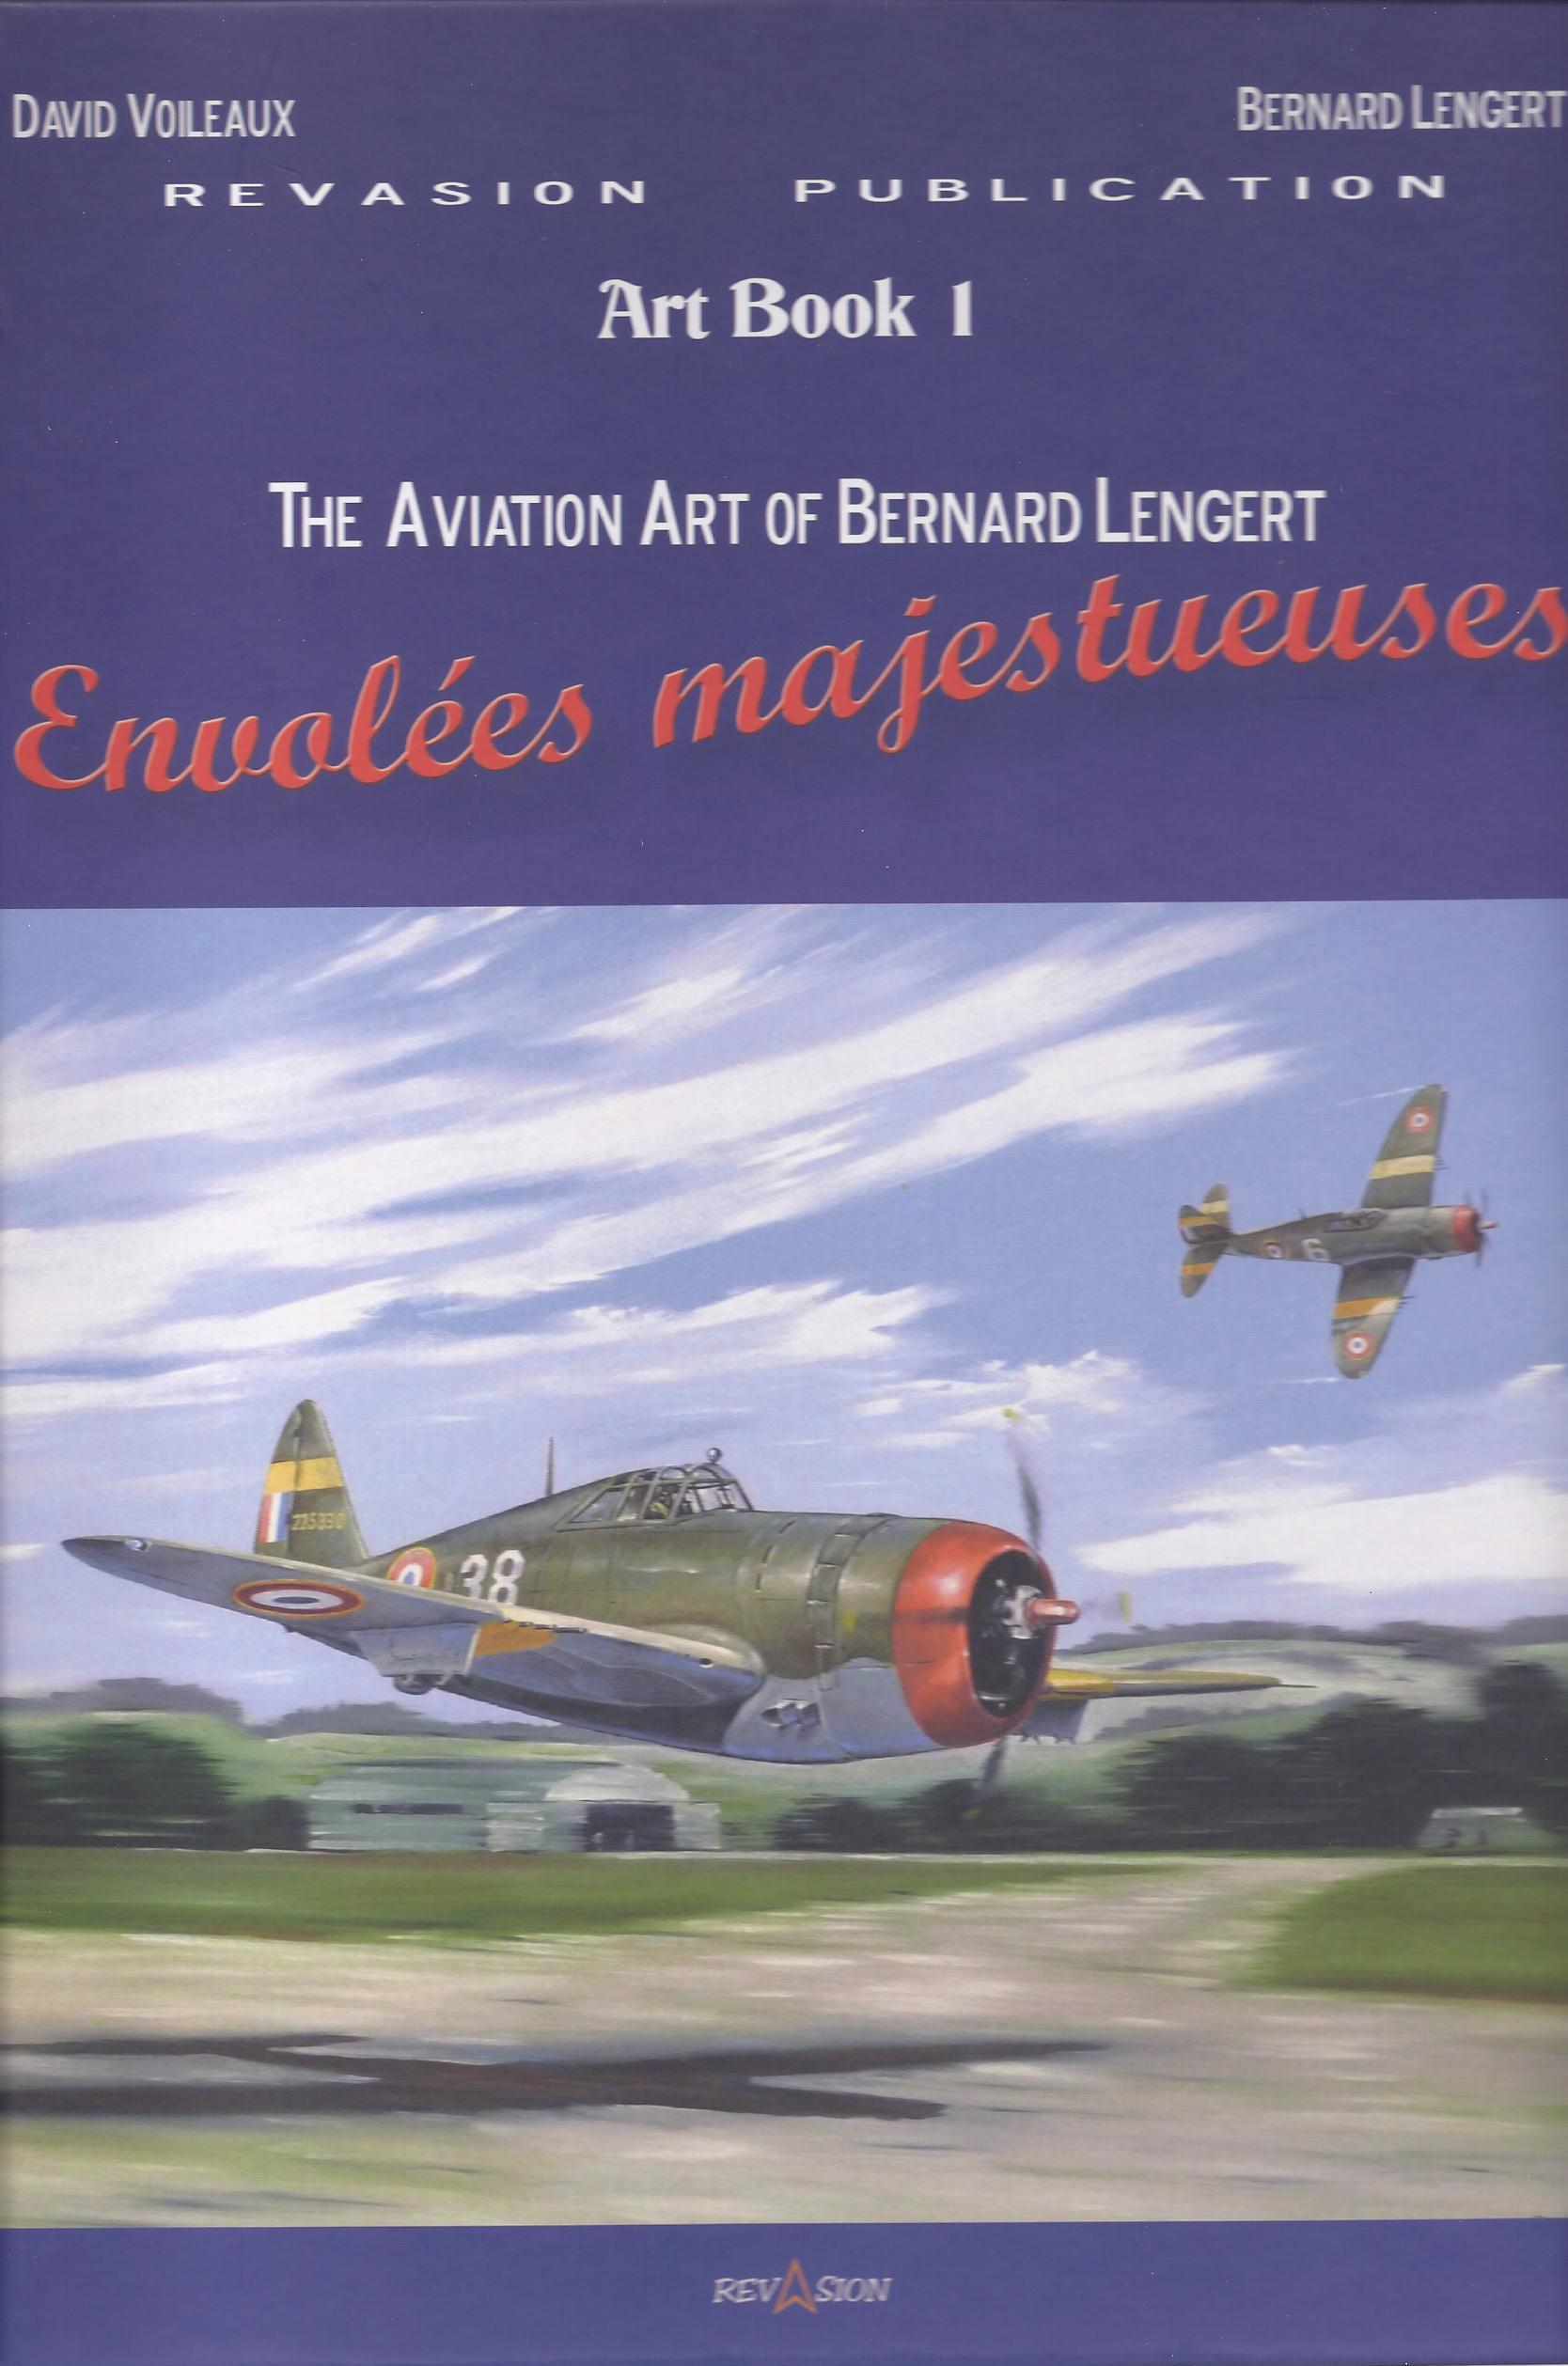 Envolées Majestueuses 1 - The Aviation Art of Bernard Lengert Envolées majestueuses